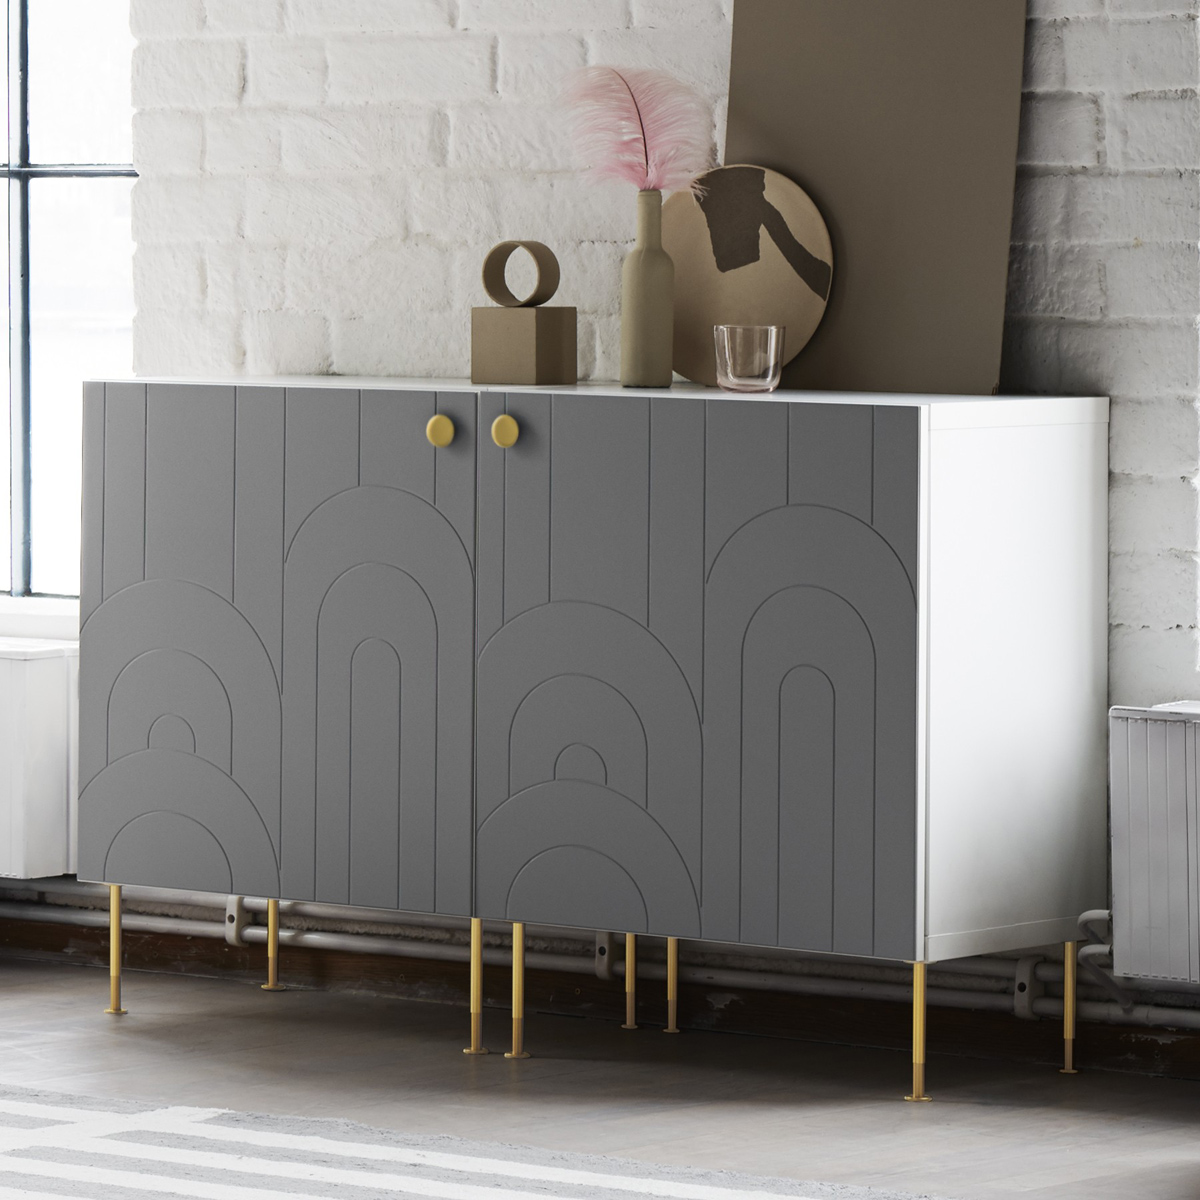 Portapiante zia flora by le zie di milano. Knobs Legs And Fronts To Customize Ikea Furniture